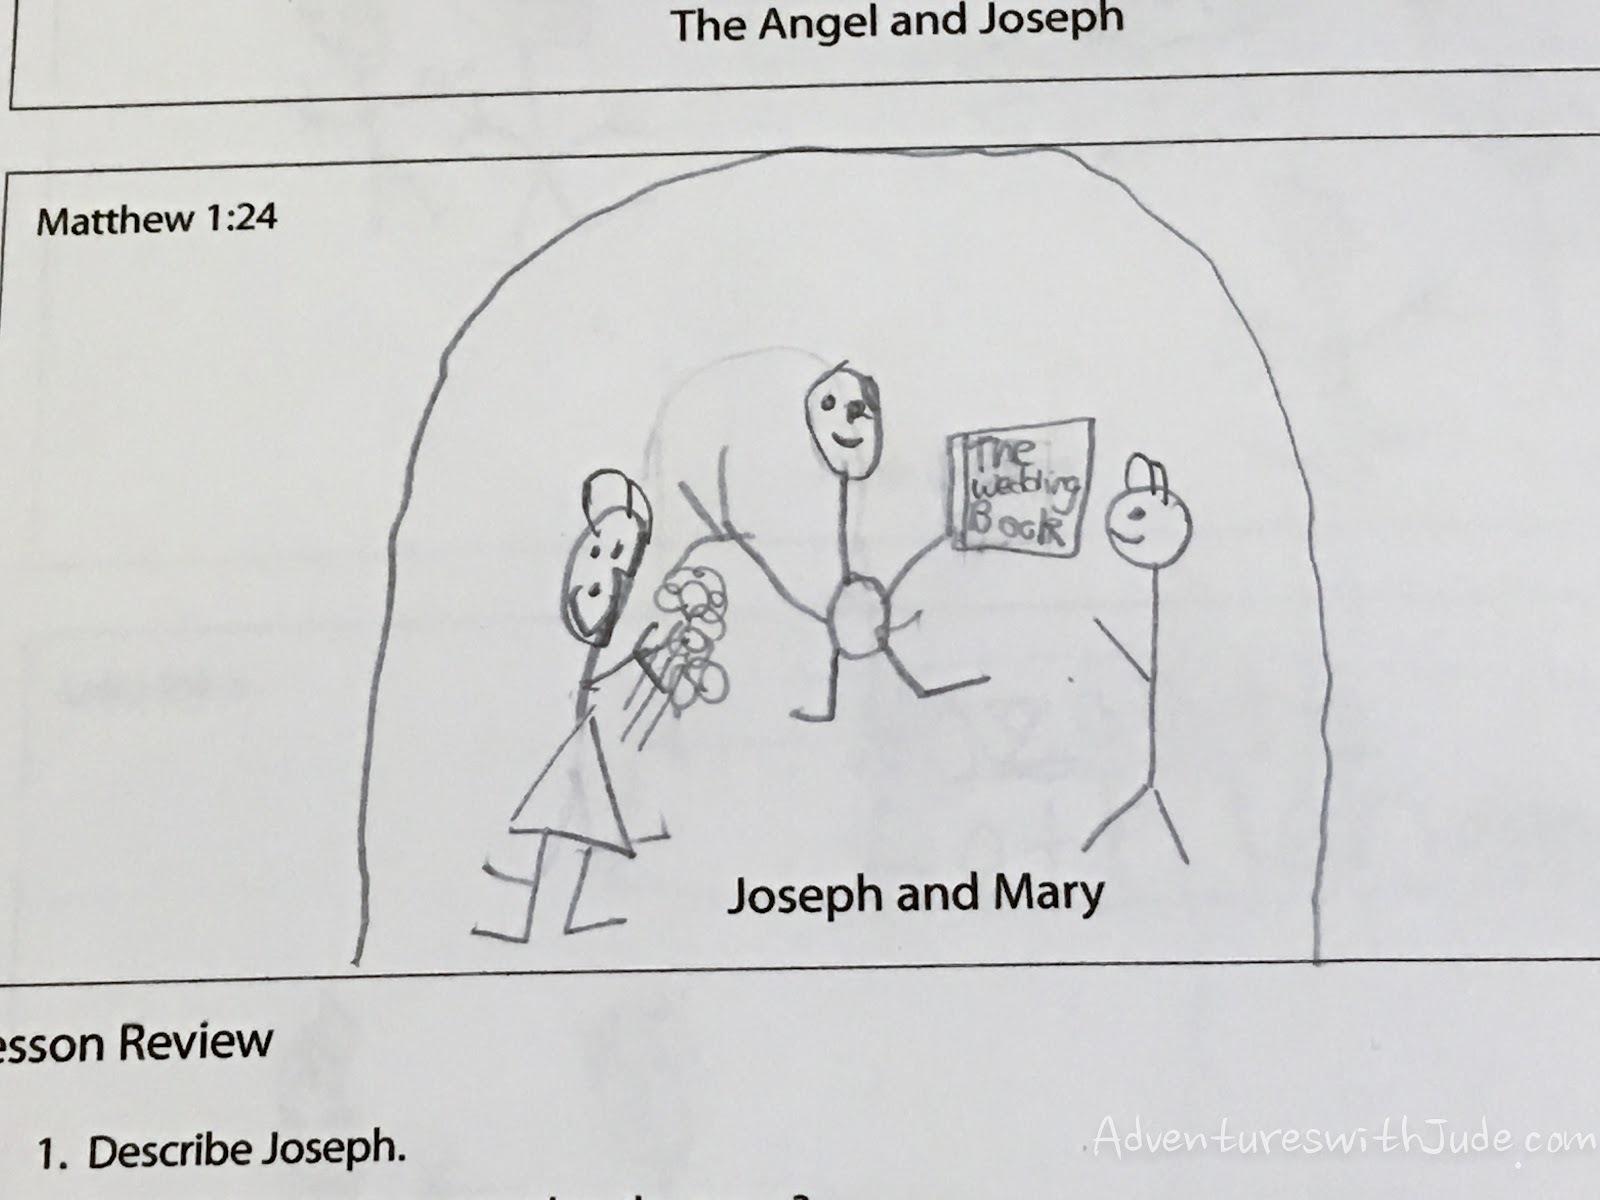 adventures with jude grapevine studies birth of jesus a